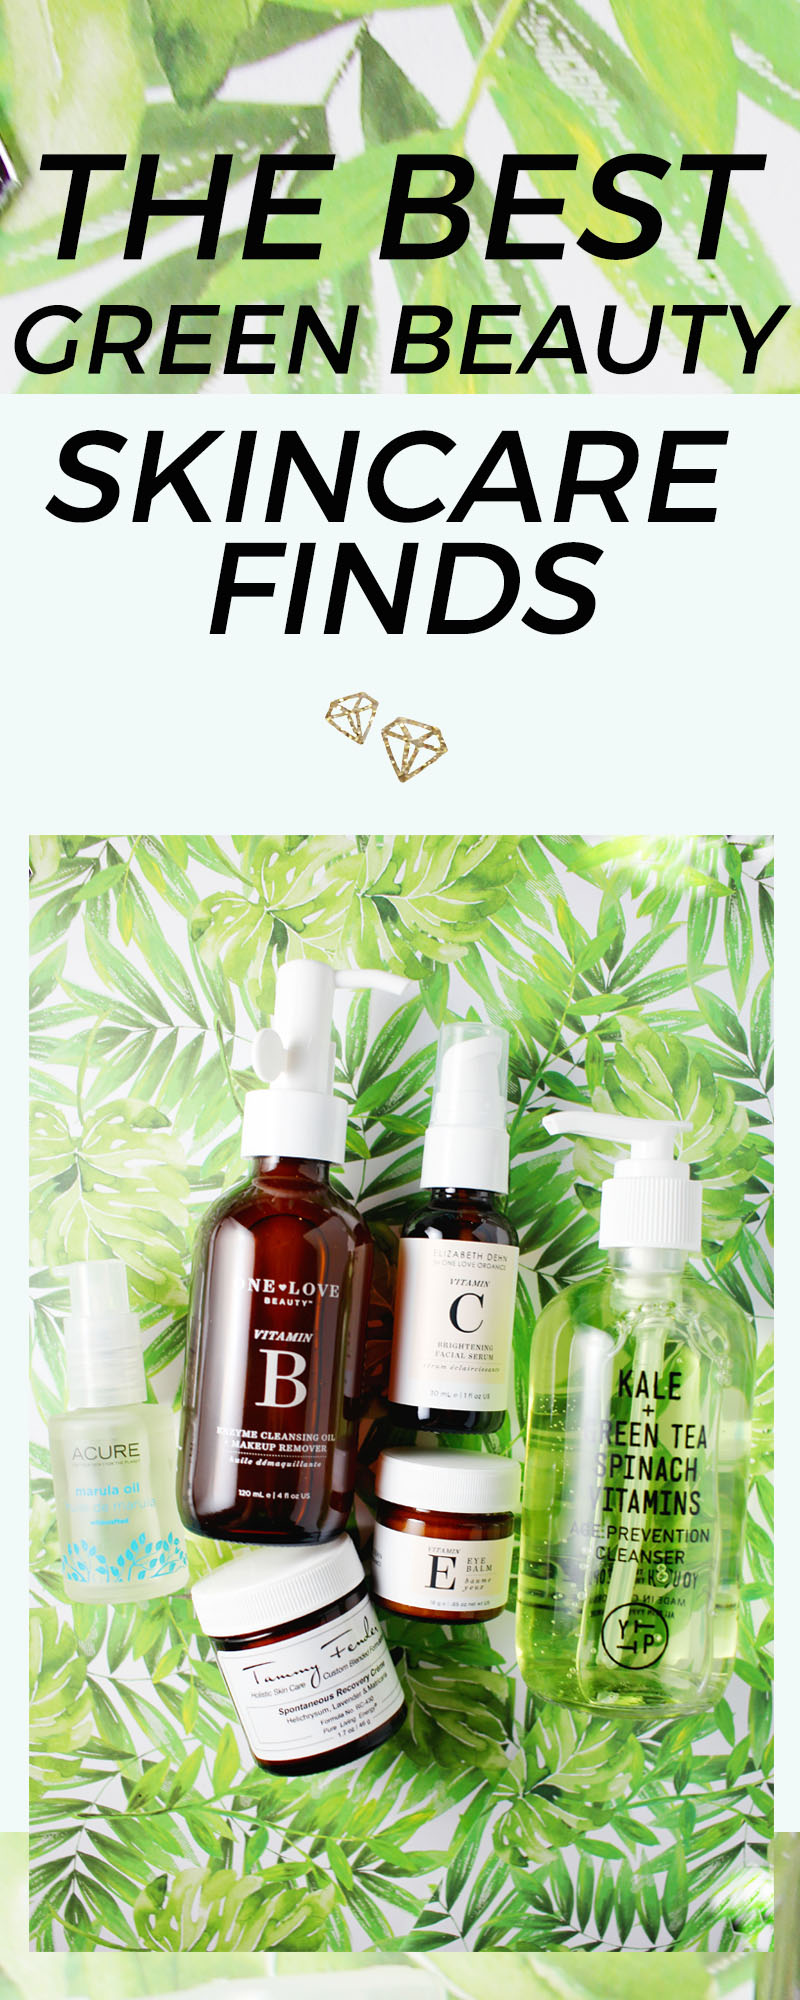 The best green beauty skincare finds